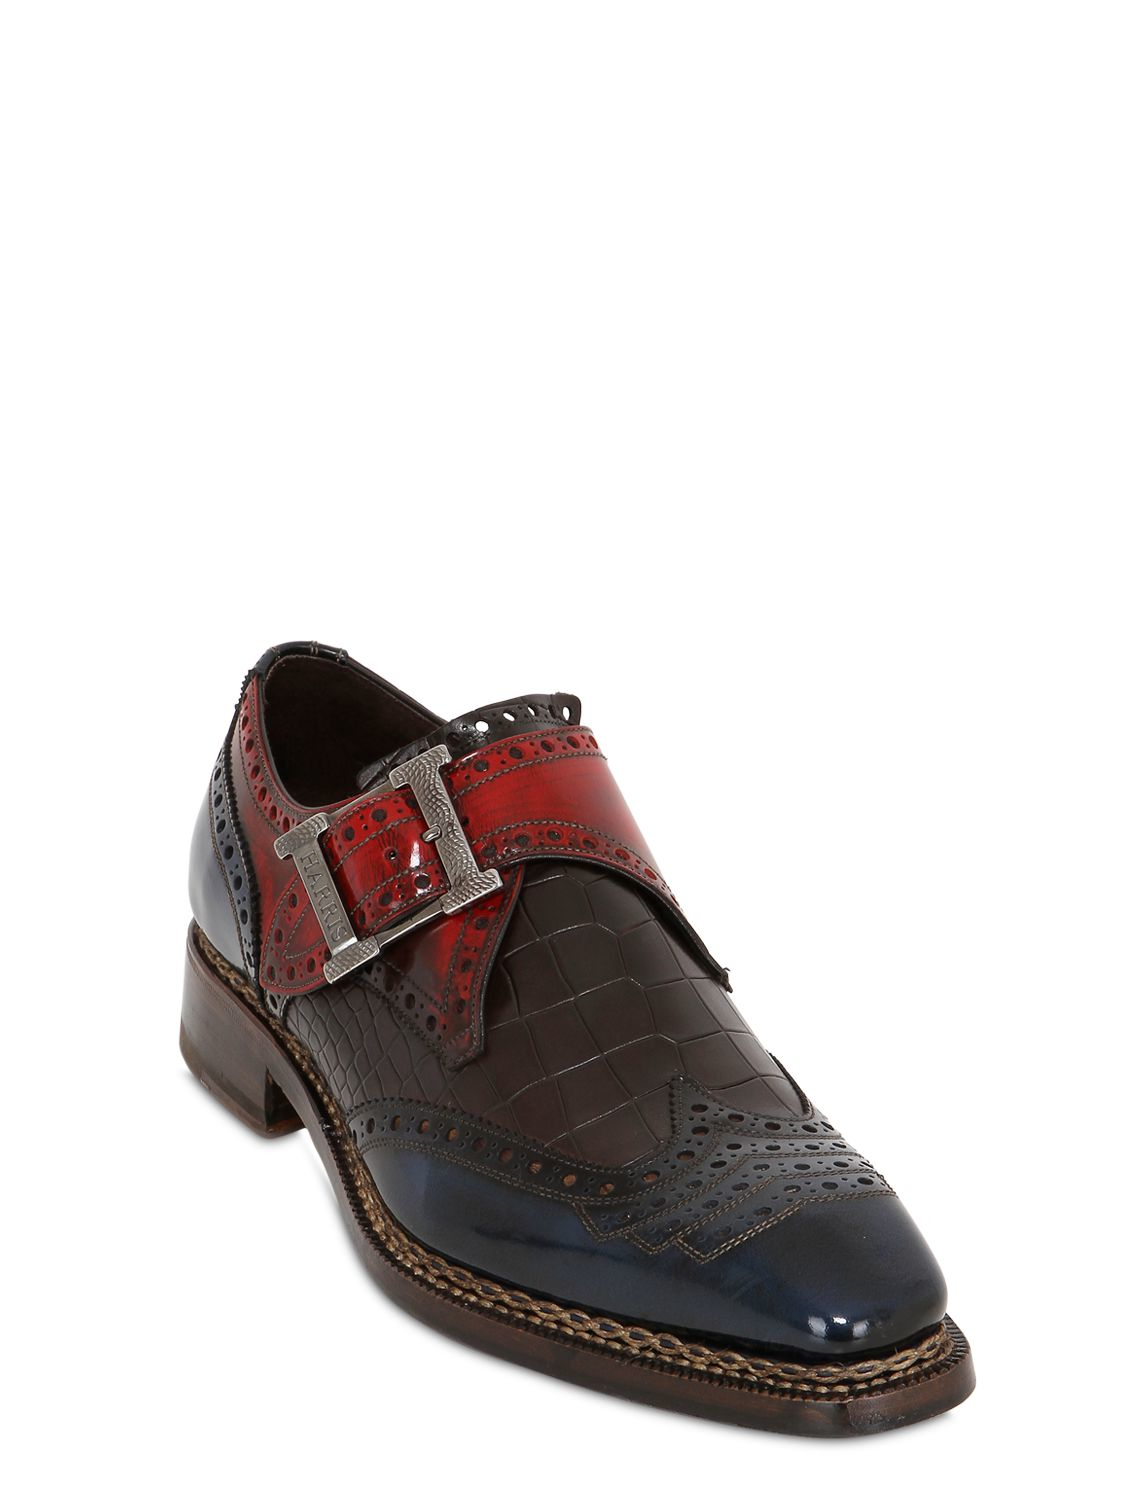 Lyst Harris Croc Embossed Leather Monk Strap Shoes In